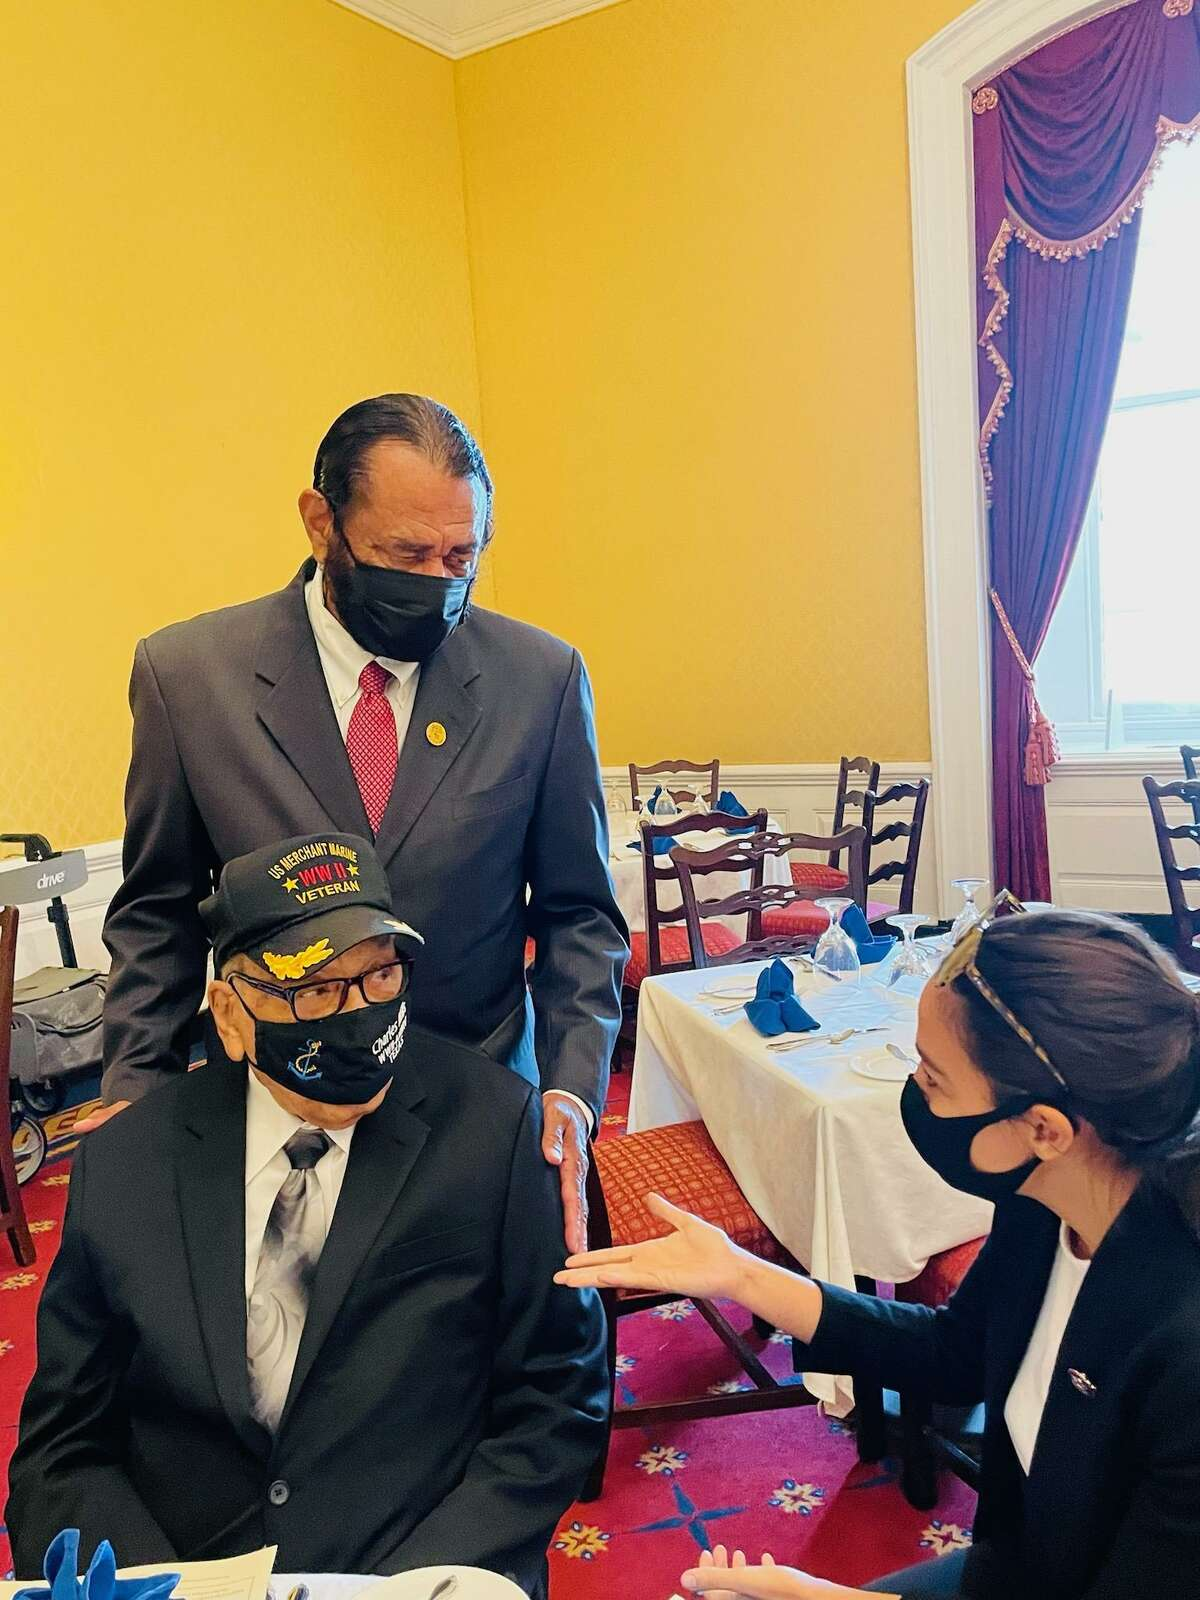 Rep. Al Green (D-Texas) and Charles Mills meet with Rep. Alexandria Ocasio-Cortez (D-New York) in Washington, D.C.